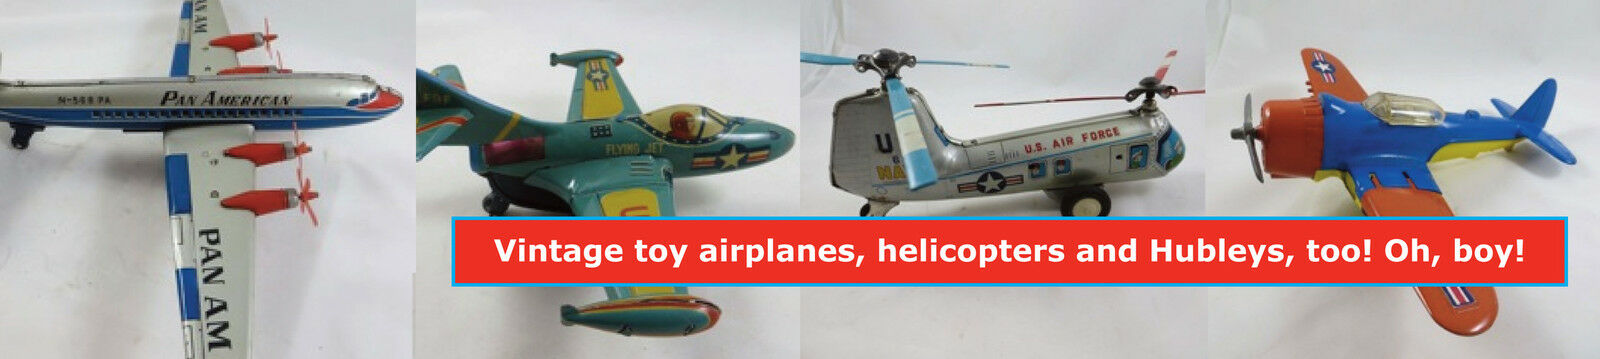 ohboytoys vintage toy airplanes